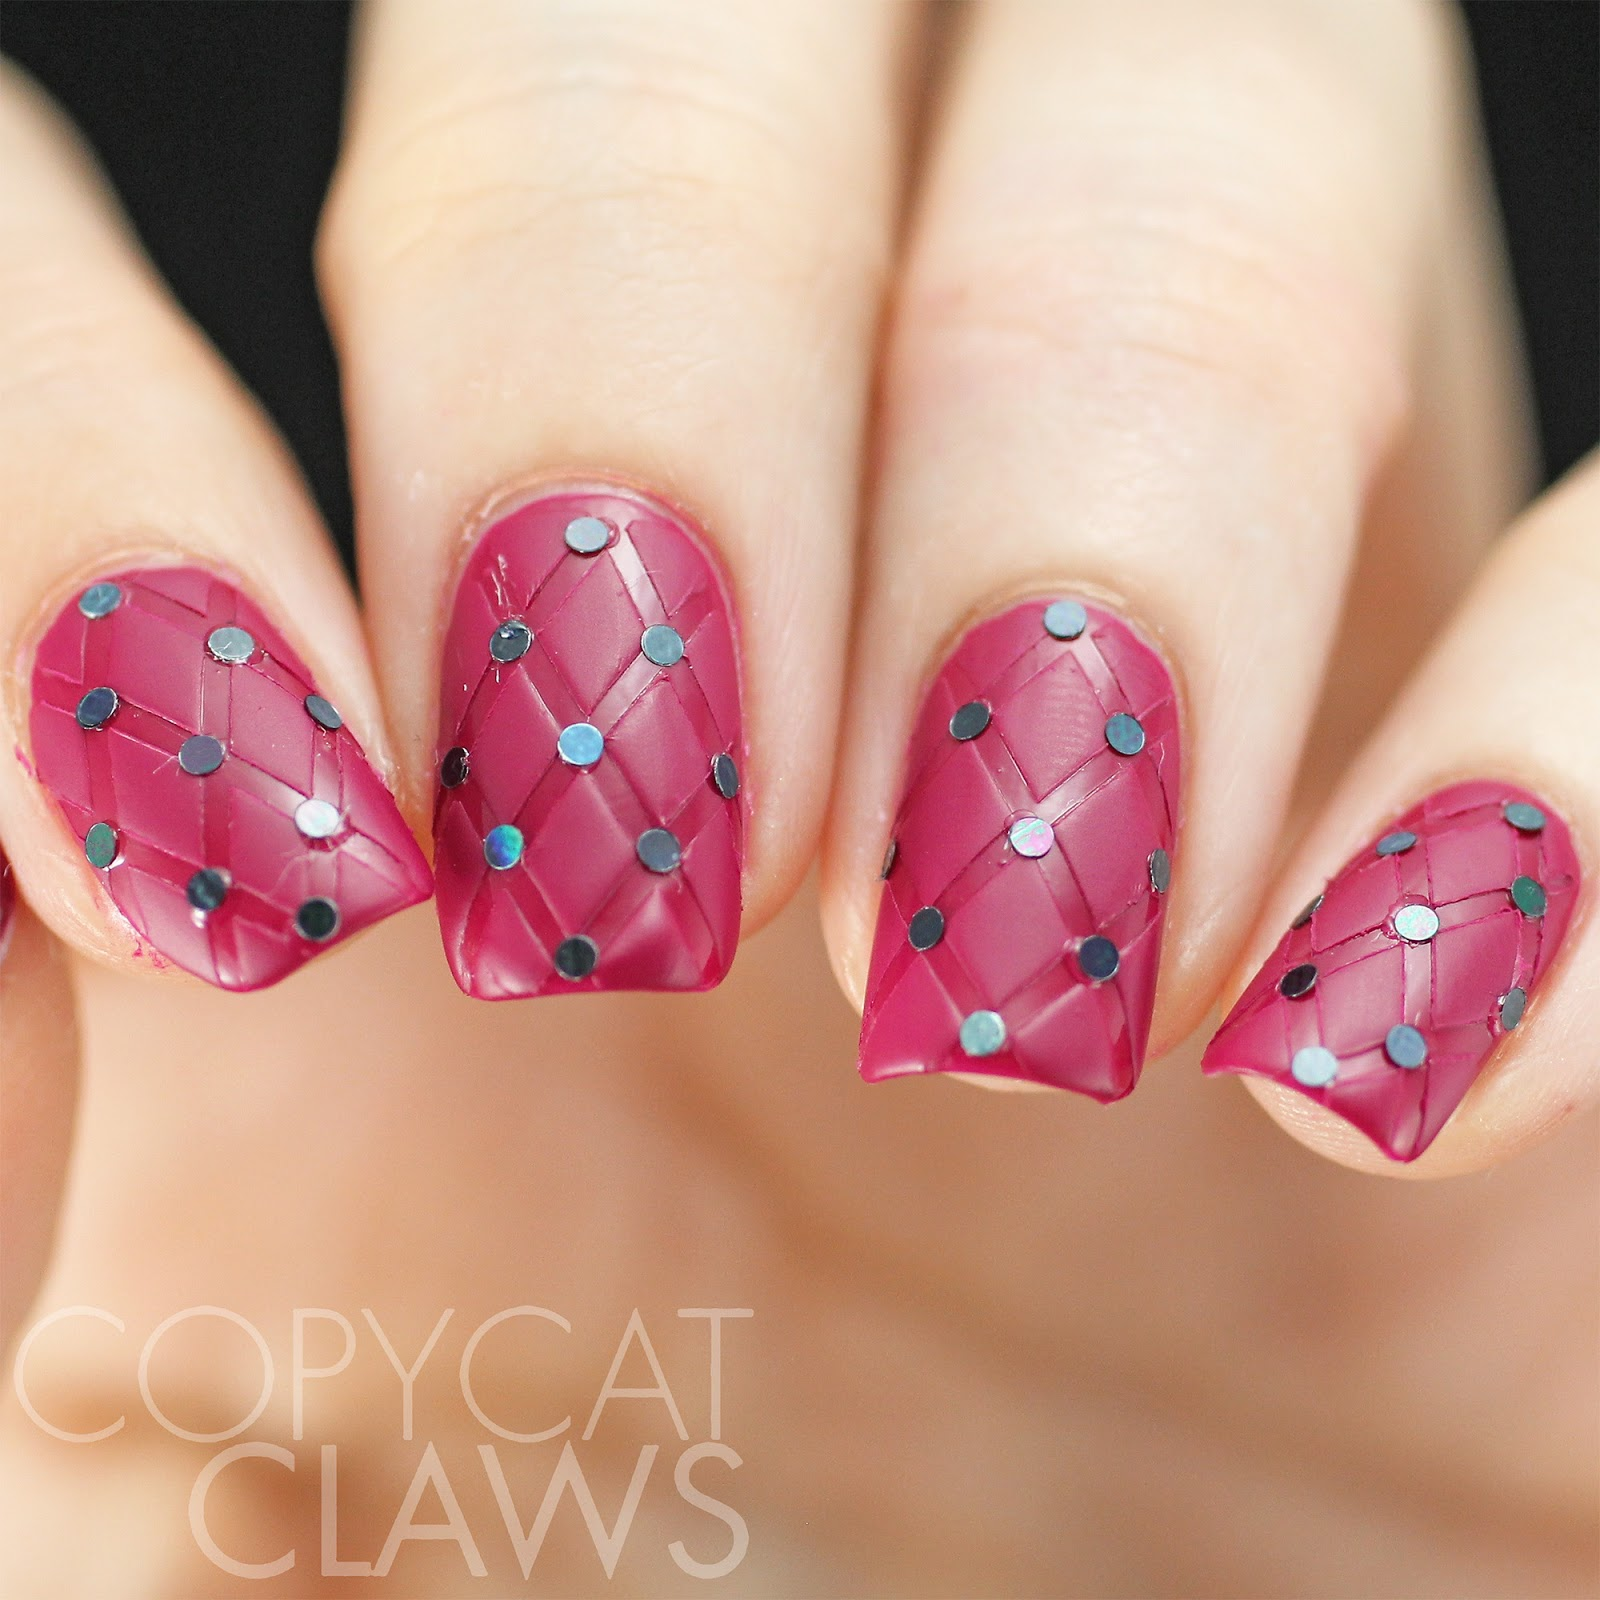 Copycat Claws: More New & Improved Nails - Quilted Nails and Foiled ...